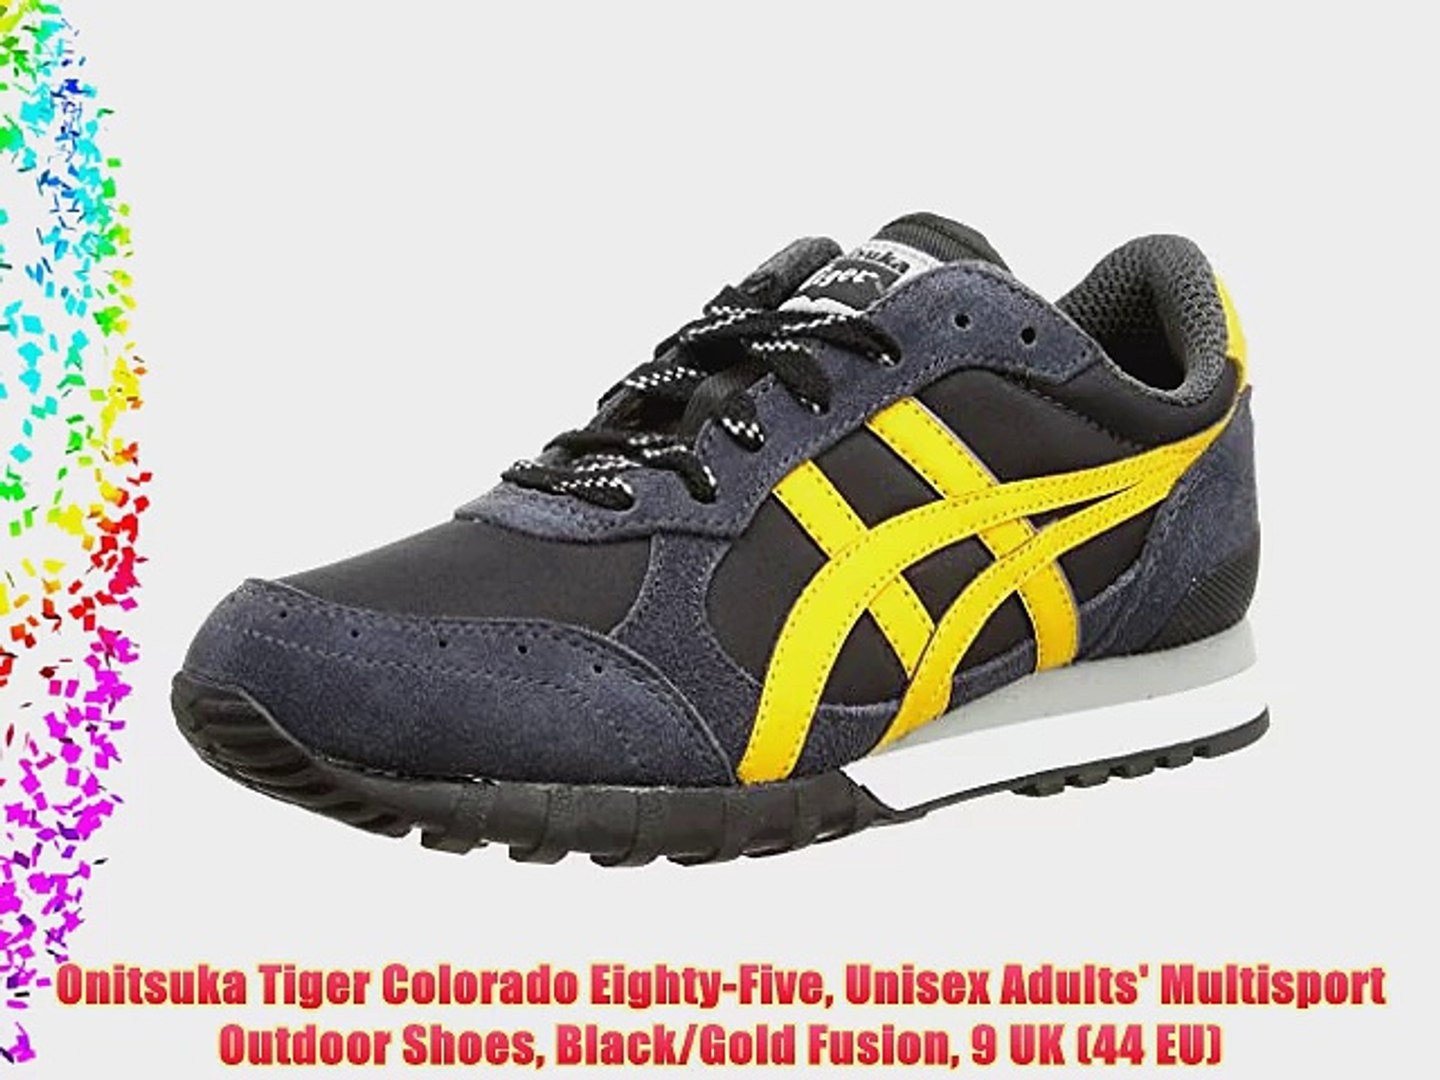 huge selection of 7db4d 4792d Onitsuka Tiger Colorado Eighty-Five Unisex Adults' Multisport Outdoor Shoes  Black/Gold Fusion